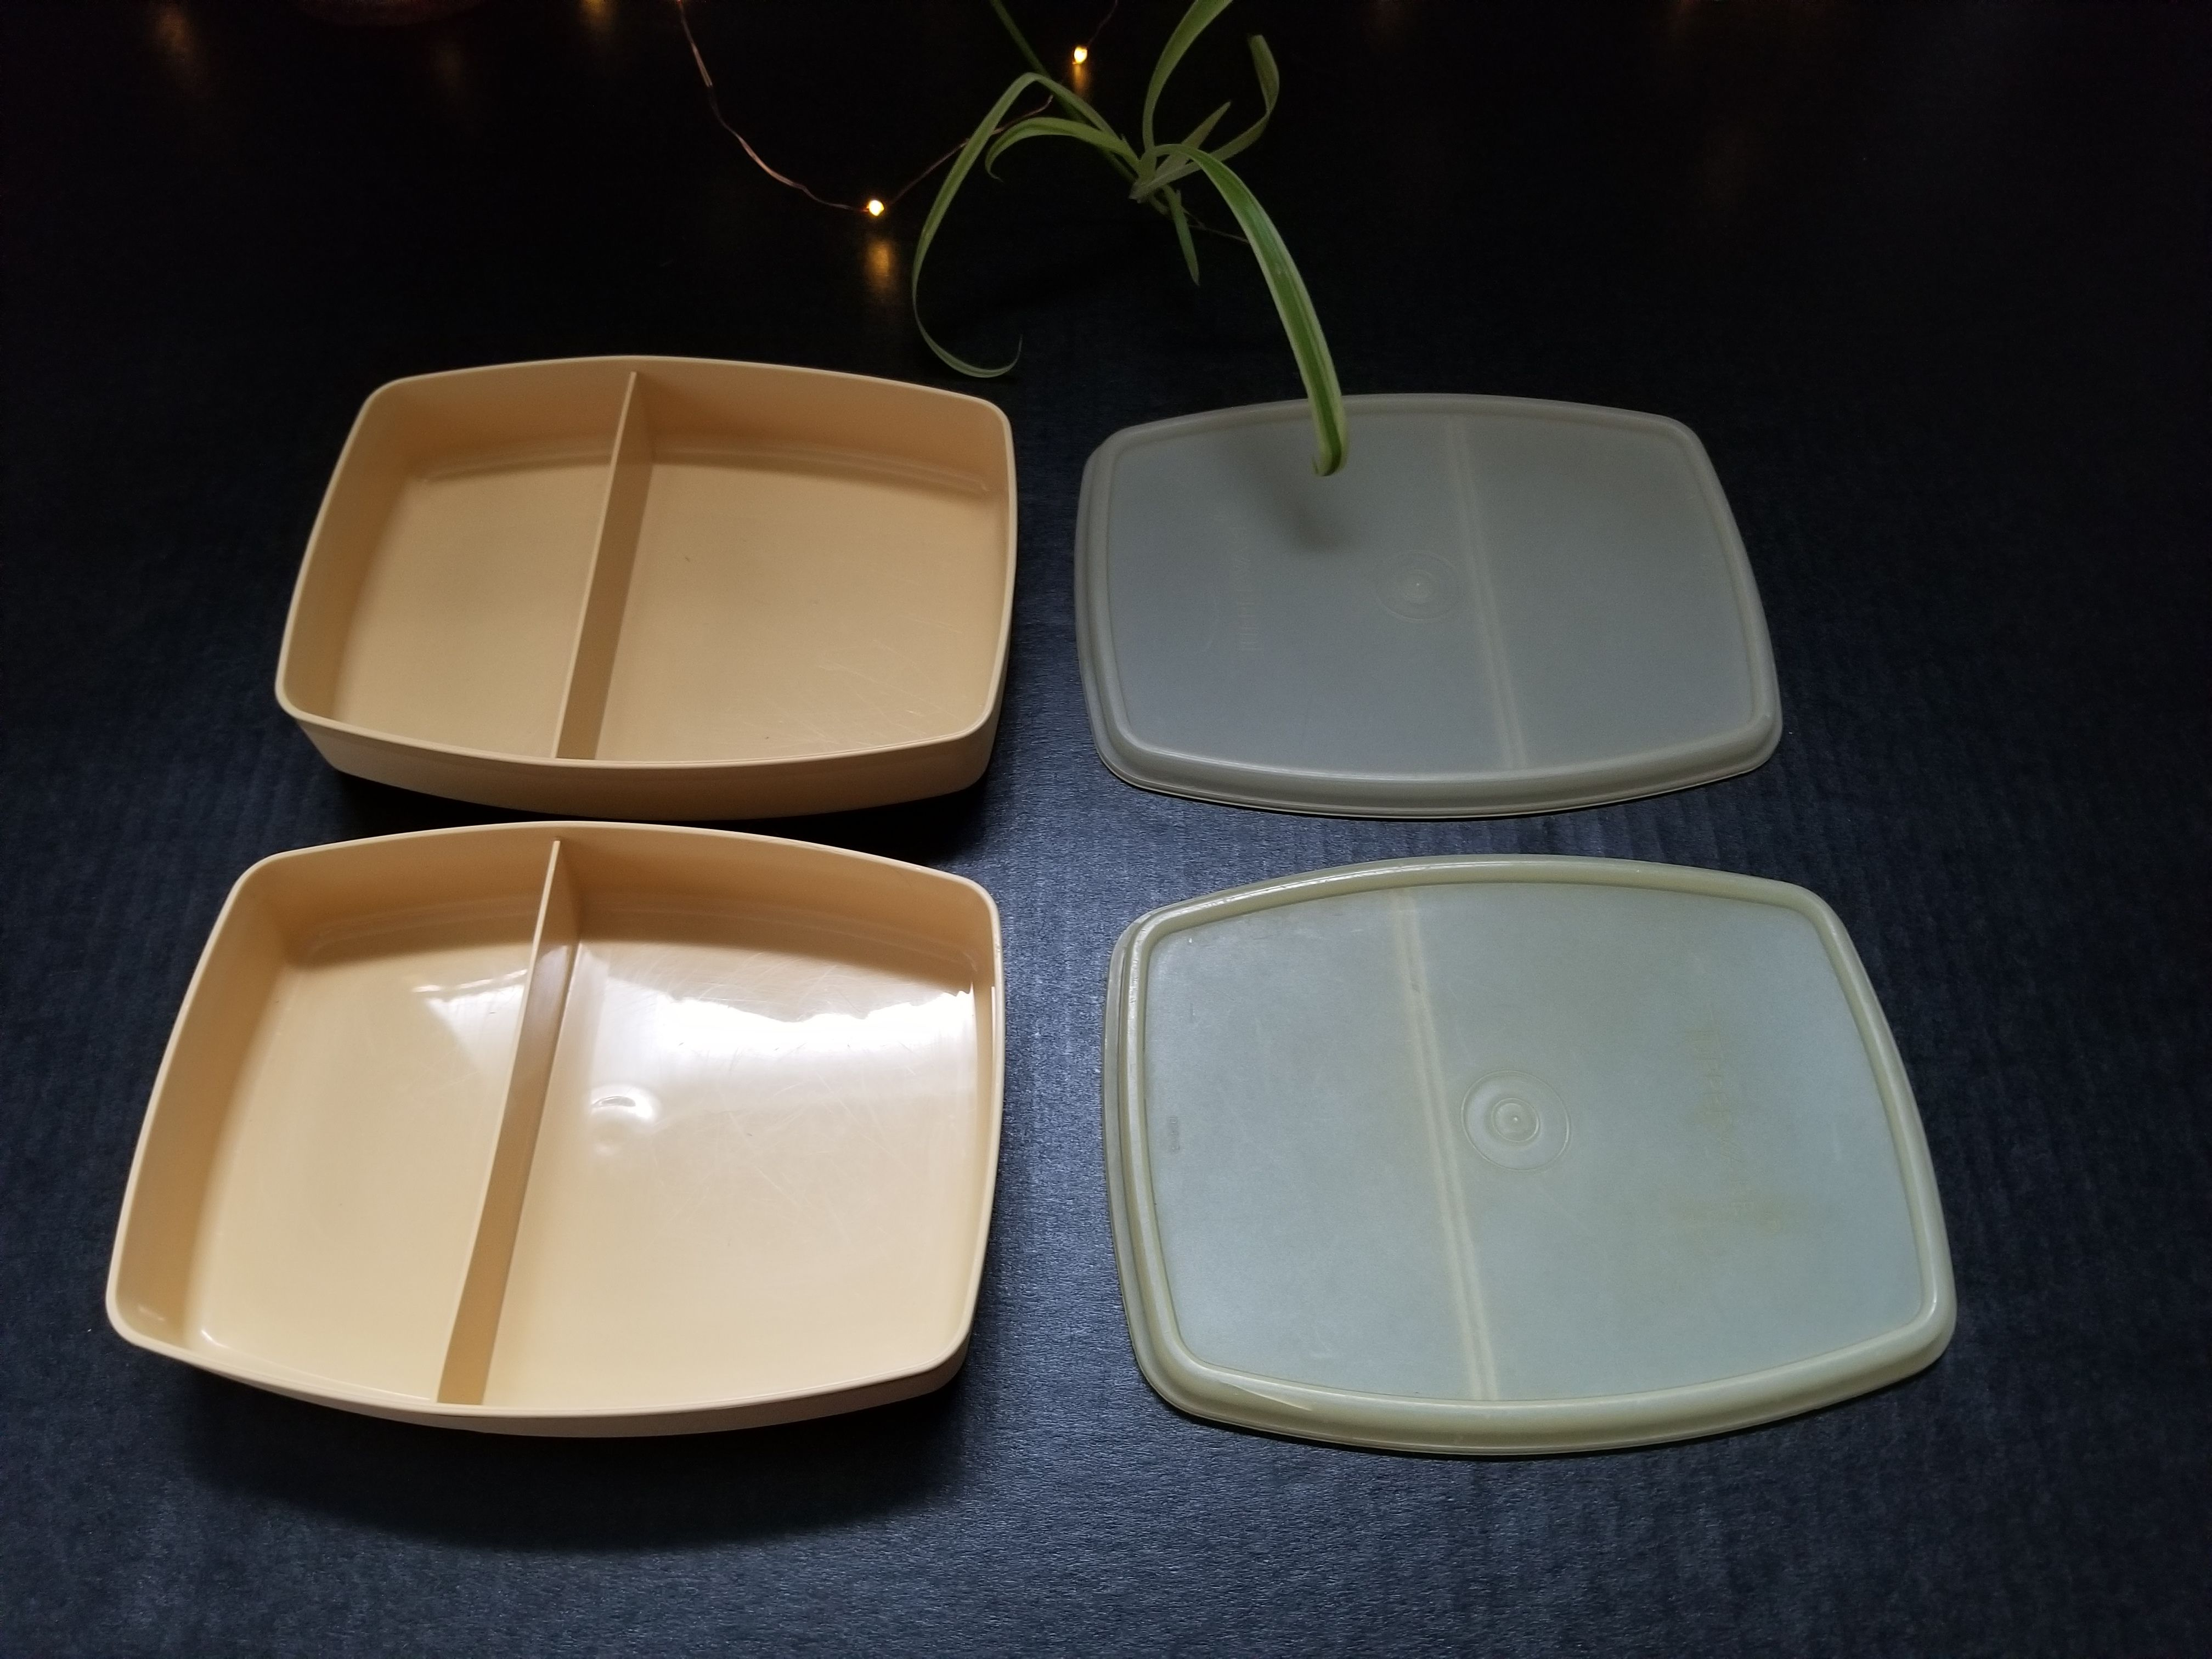 Great vintage tupperware lunch boxes. Sandwich and snack